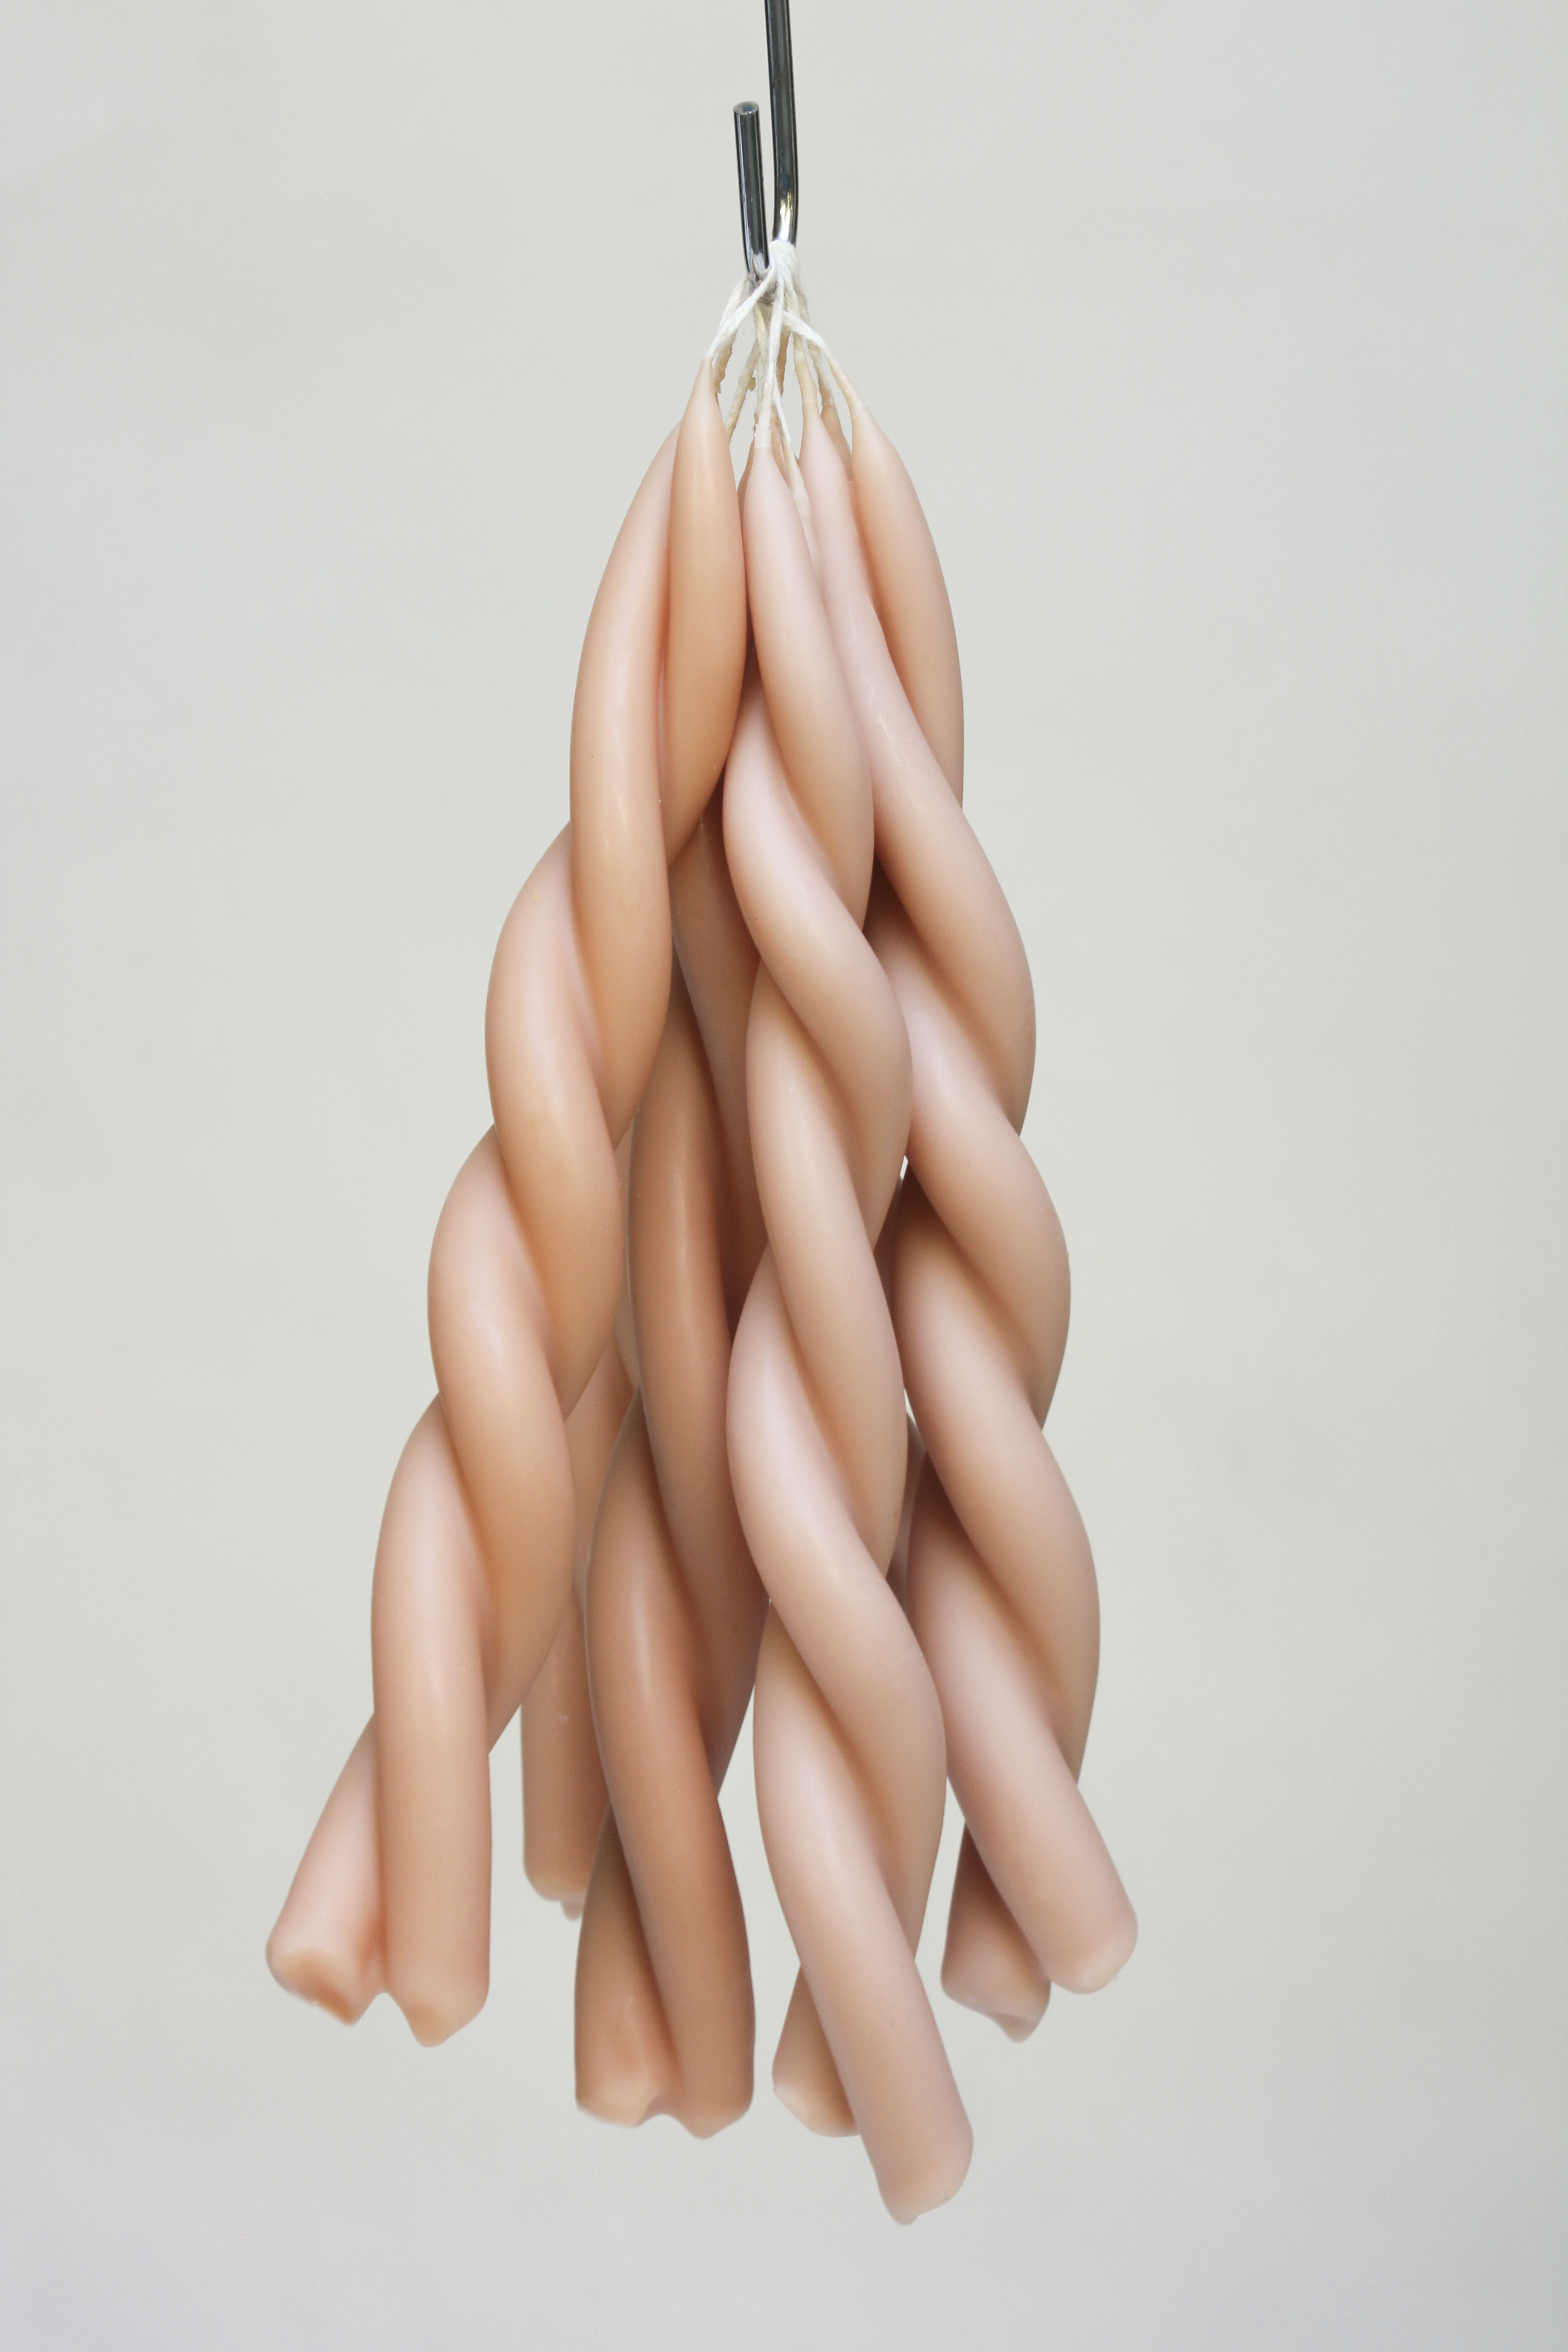 Twisted Candle - Pink Blossom - Wax Atelier